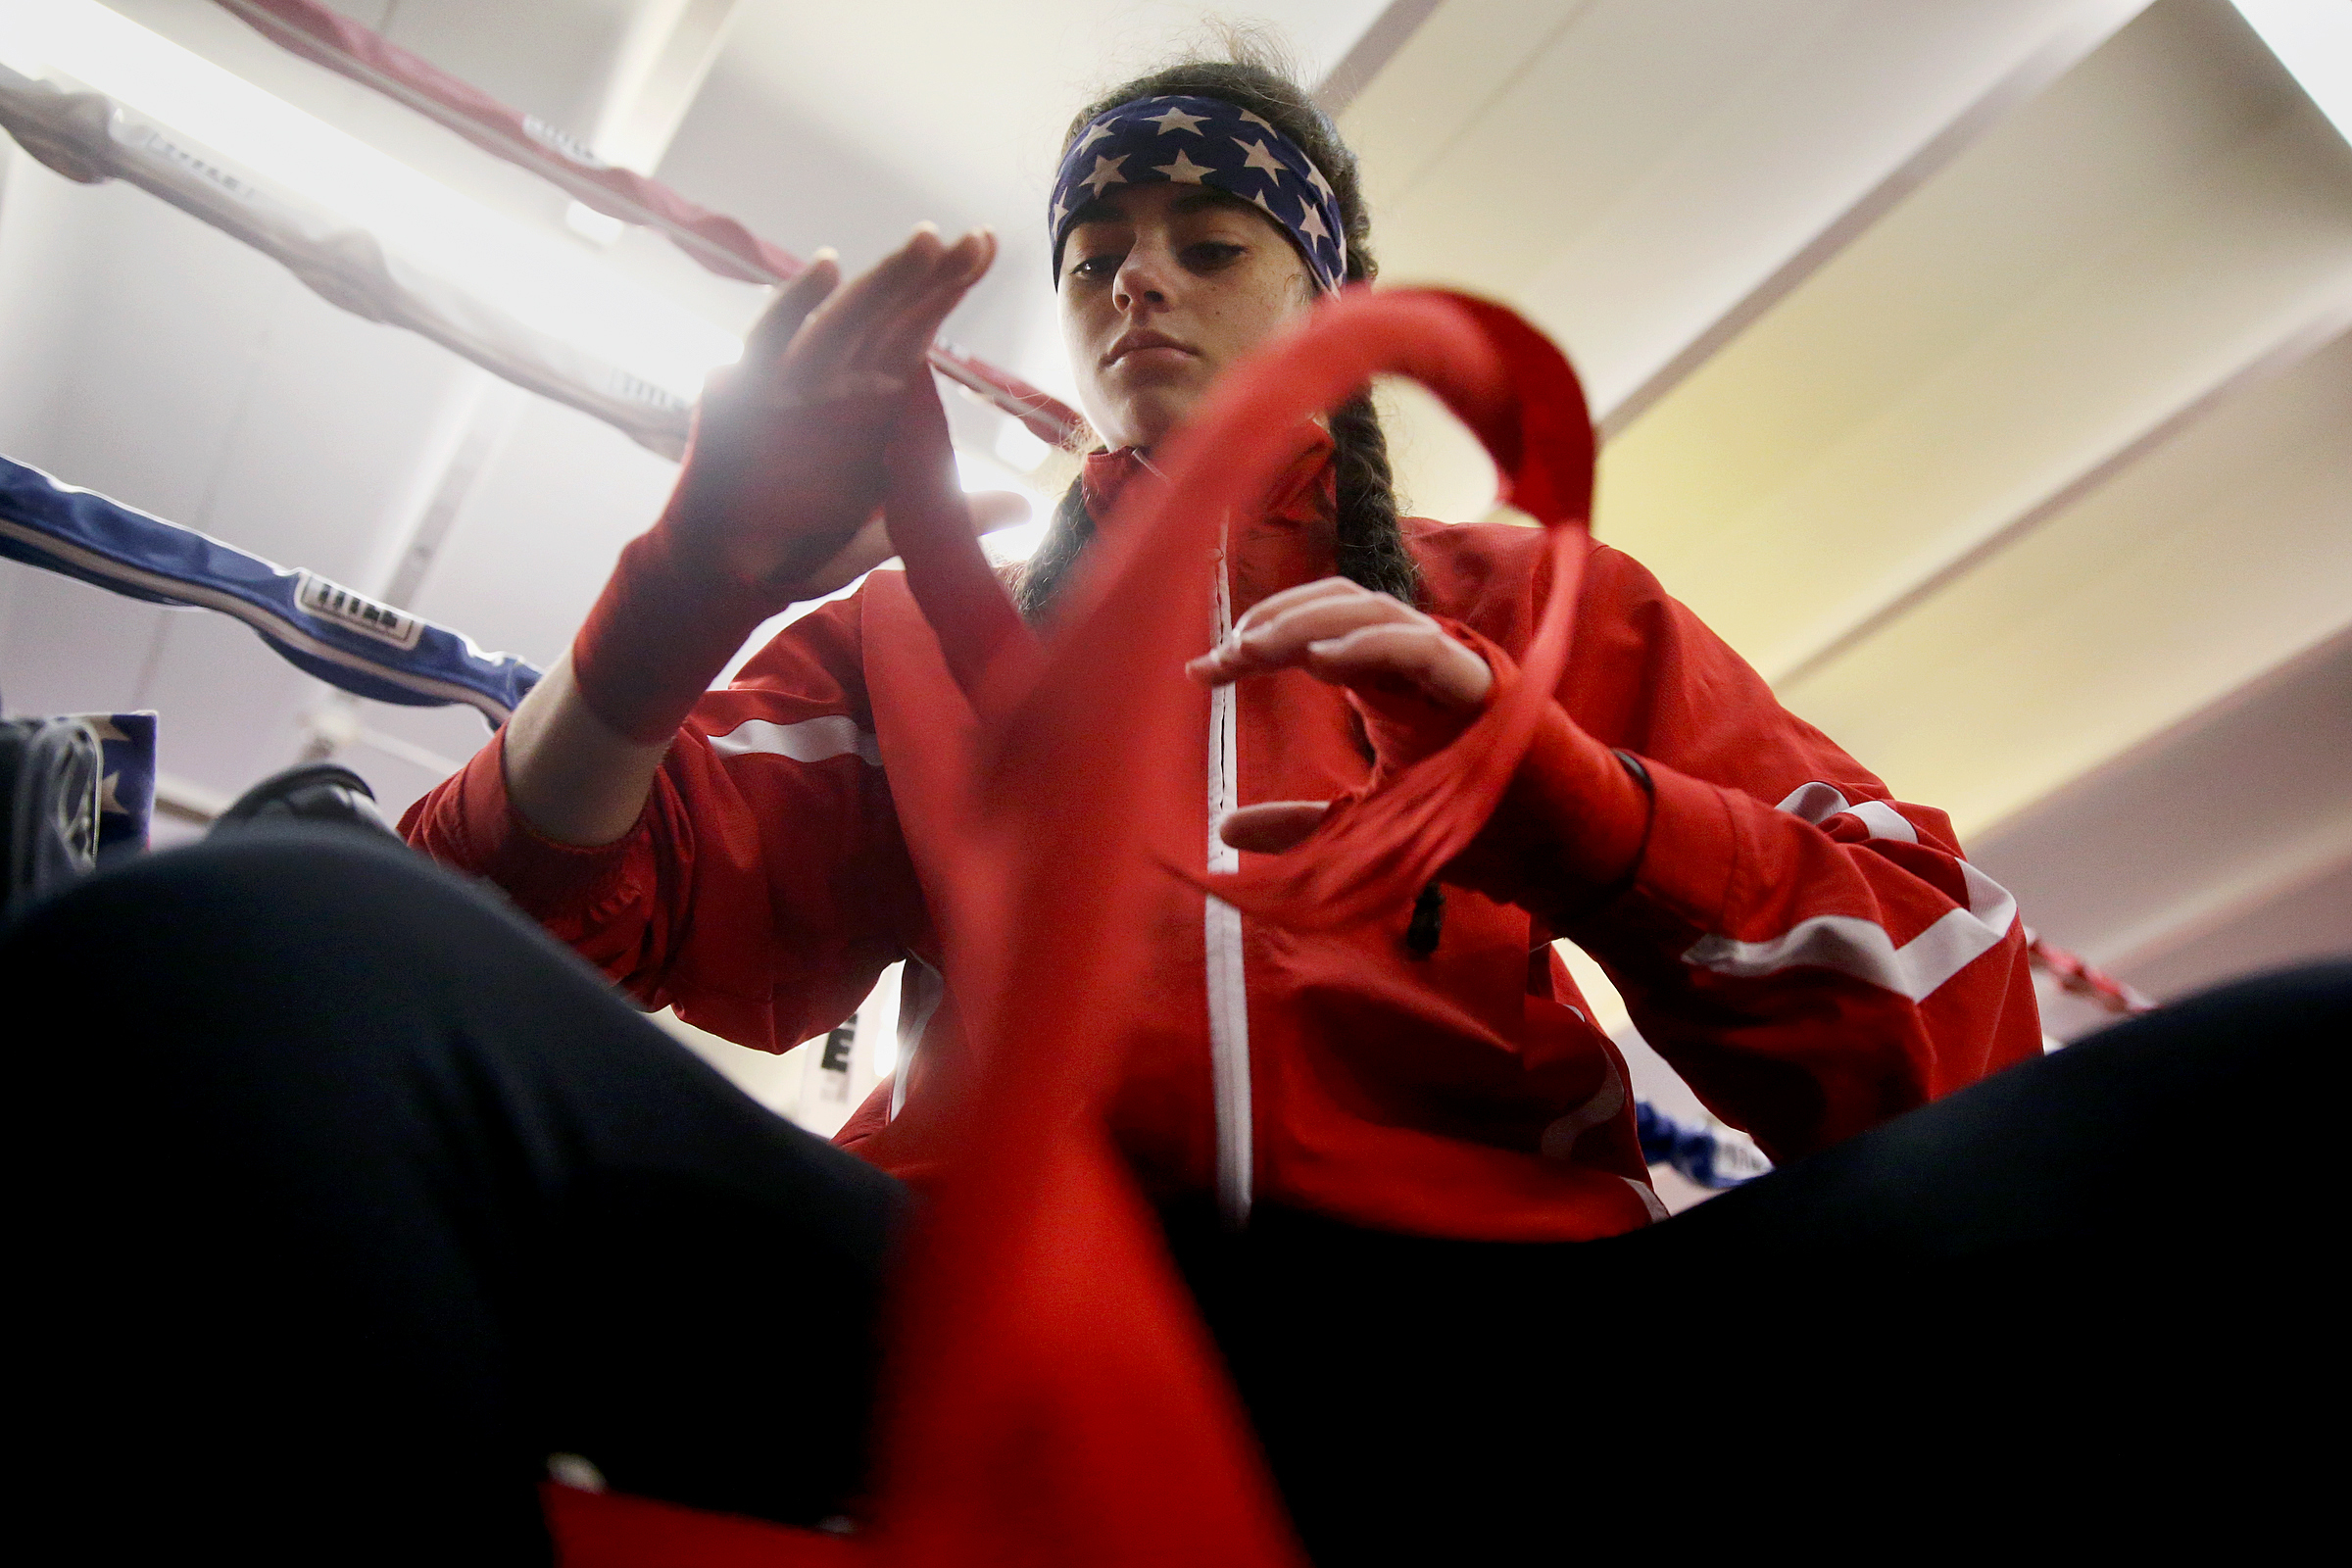 Natalie Dove, 16, wraps her hands before putting on gloves while training at Philly´s Next Champ boxing gym. TIM TAI / Staff Photographer